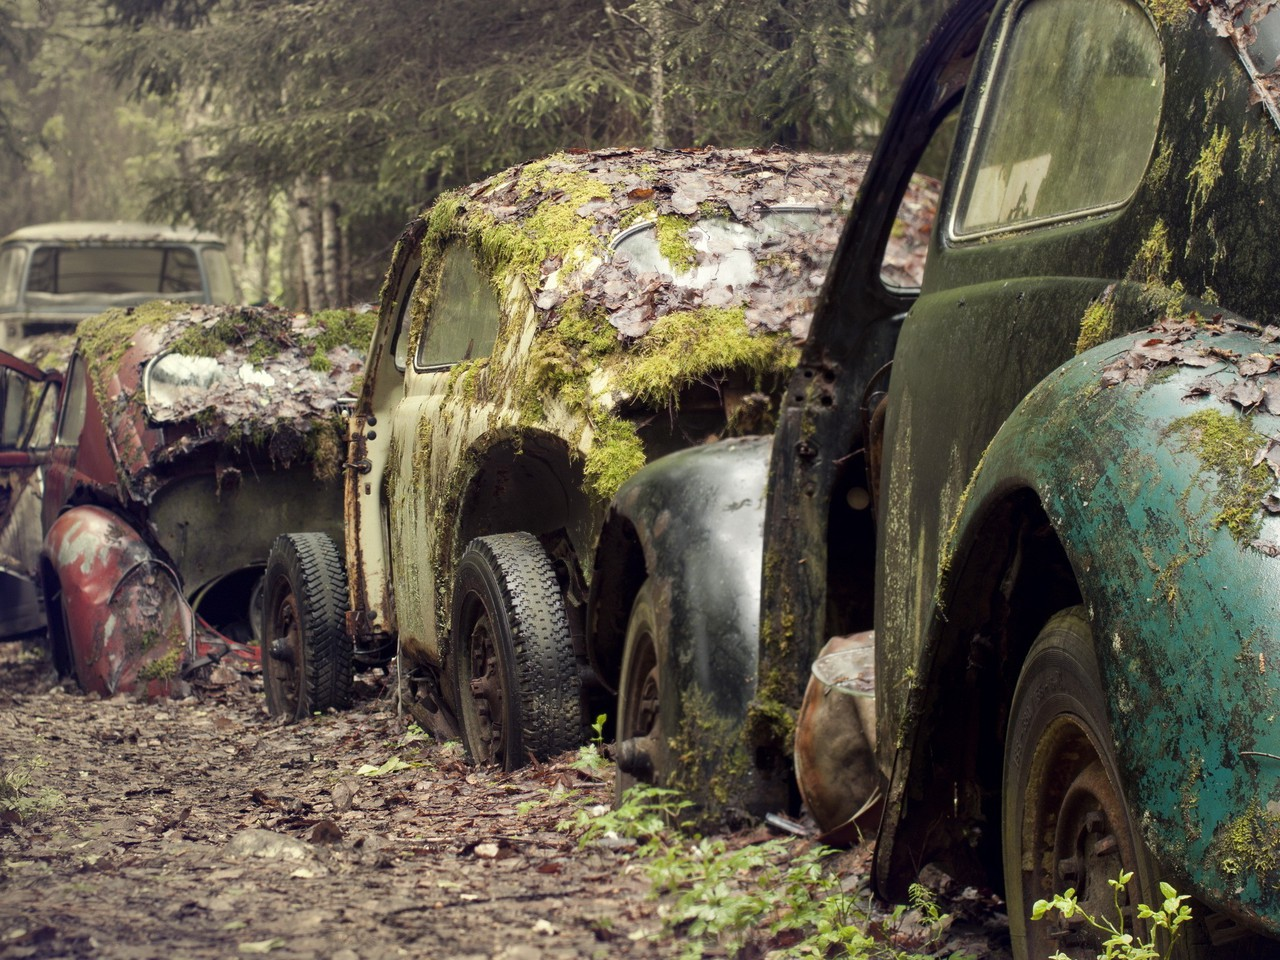 Microsoft Wallpaper Fall Volkswagen Beetle Cars Moss Old Rusted Wallpaper